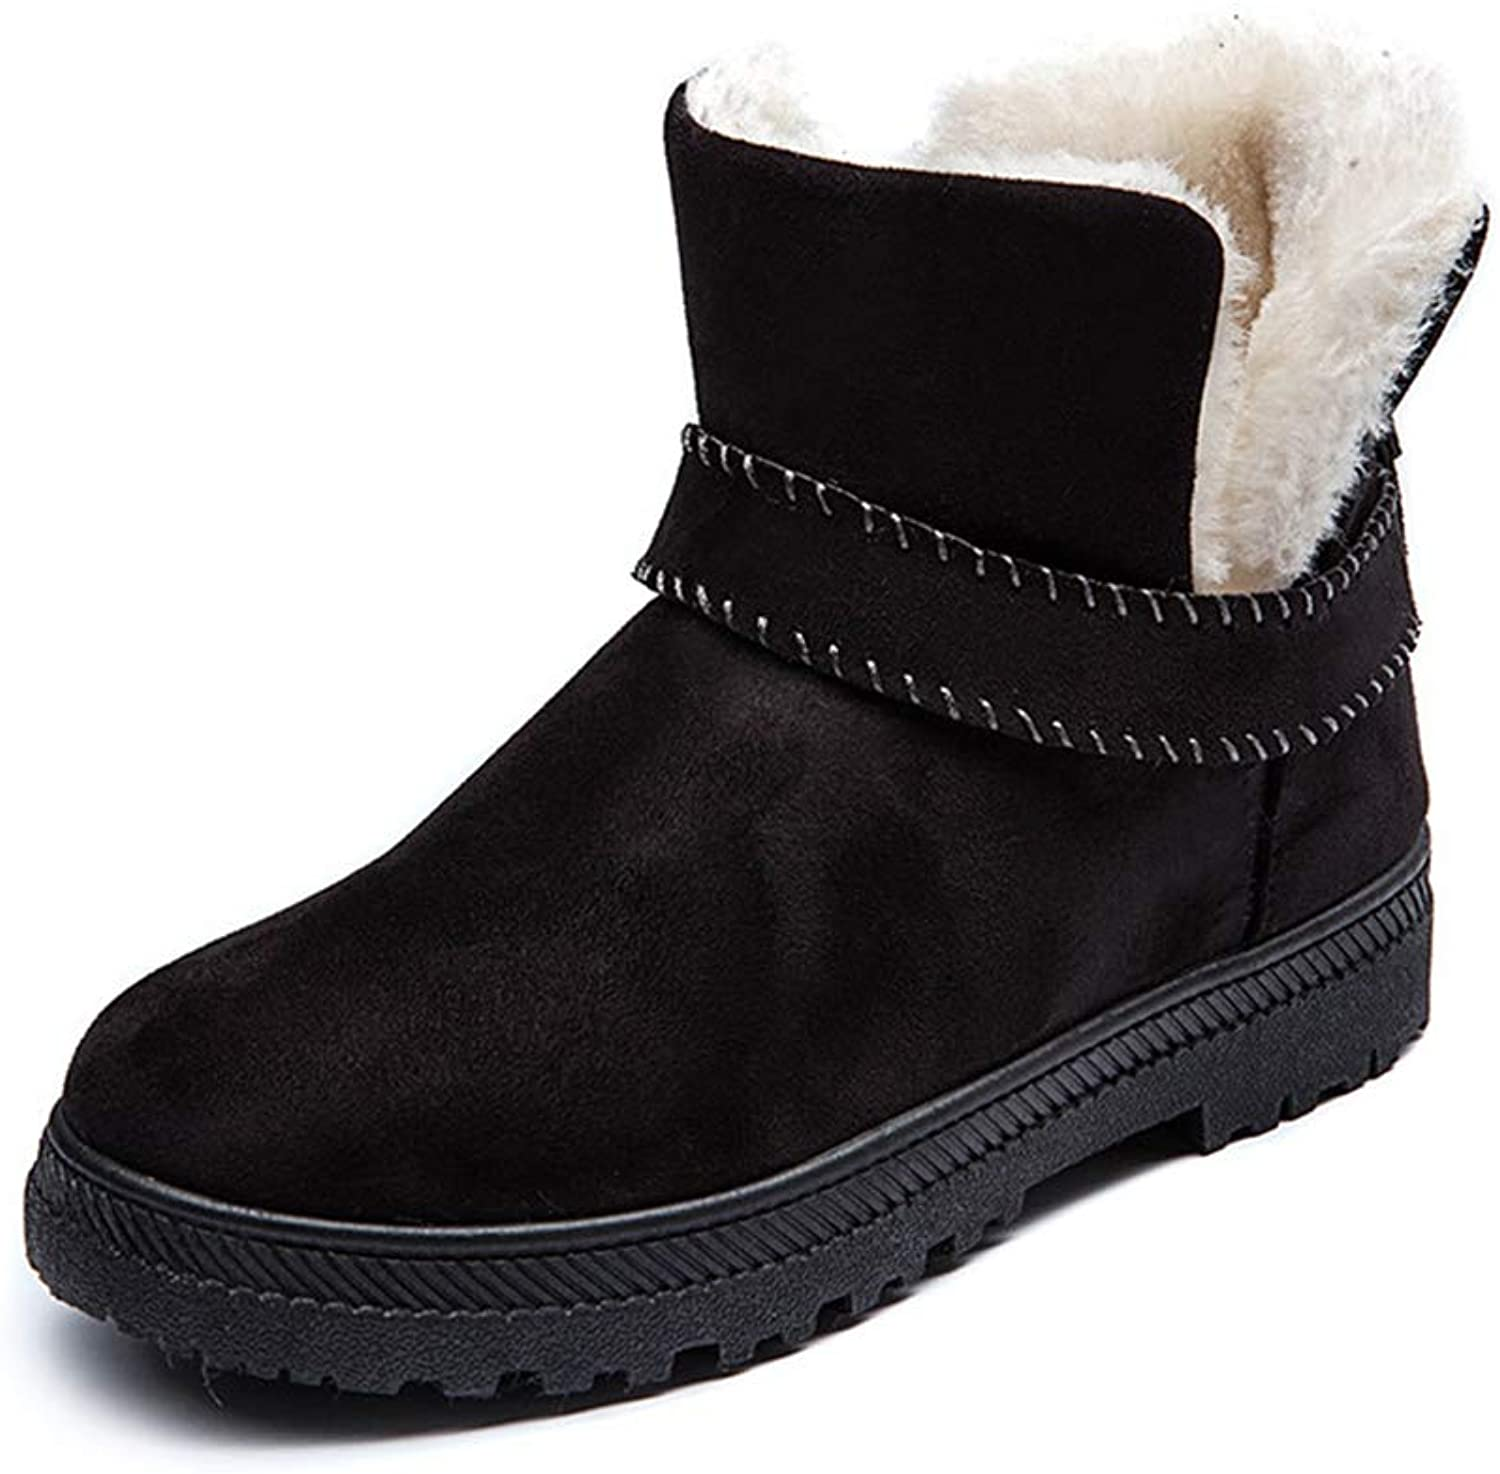 Women Winter Ankle Snow Boots Flat Low Heel Booties Slip-on Warm Plush Outdoor Short Boots, Add Fur